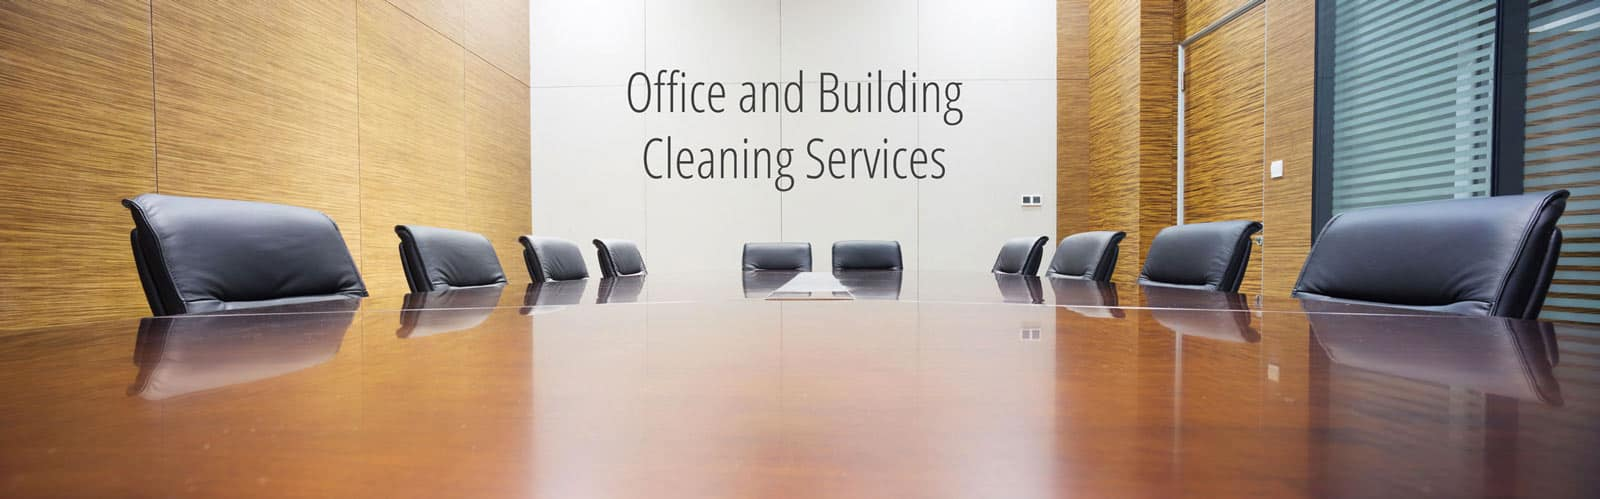 Office Cleaning Services in Pittsburgh, Robinson Township, Washington PA, Moon Twp, Carnegie, Canonsburg…